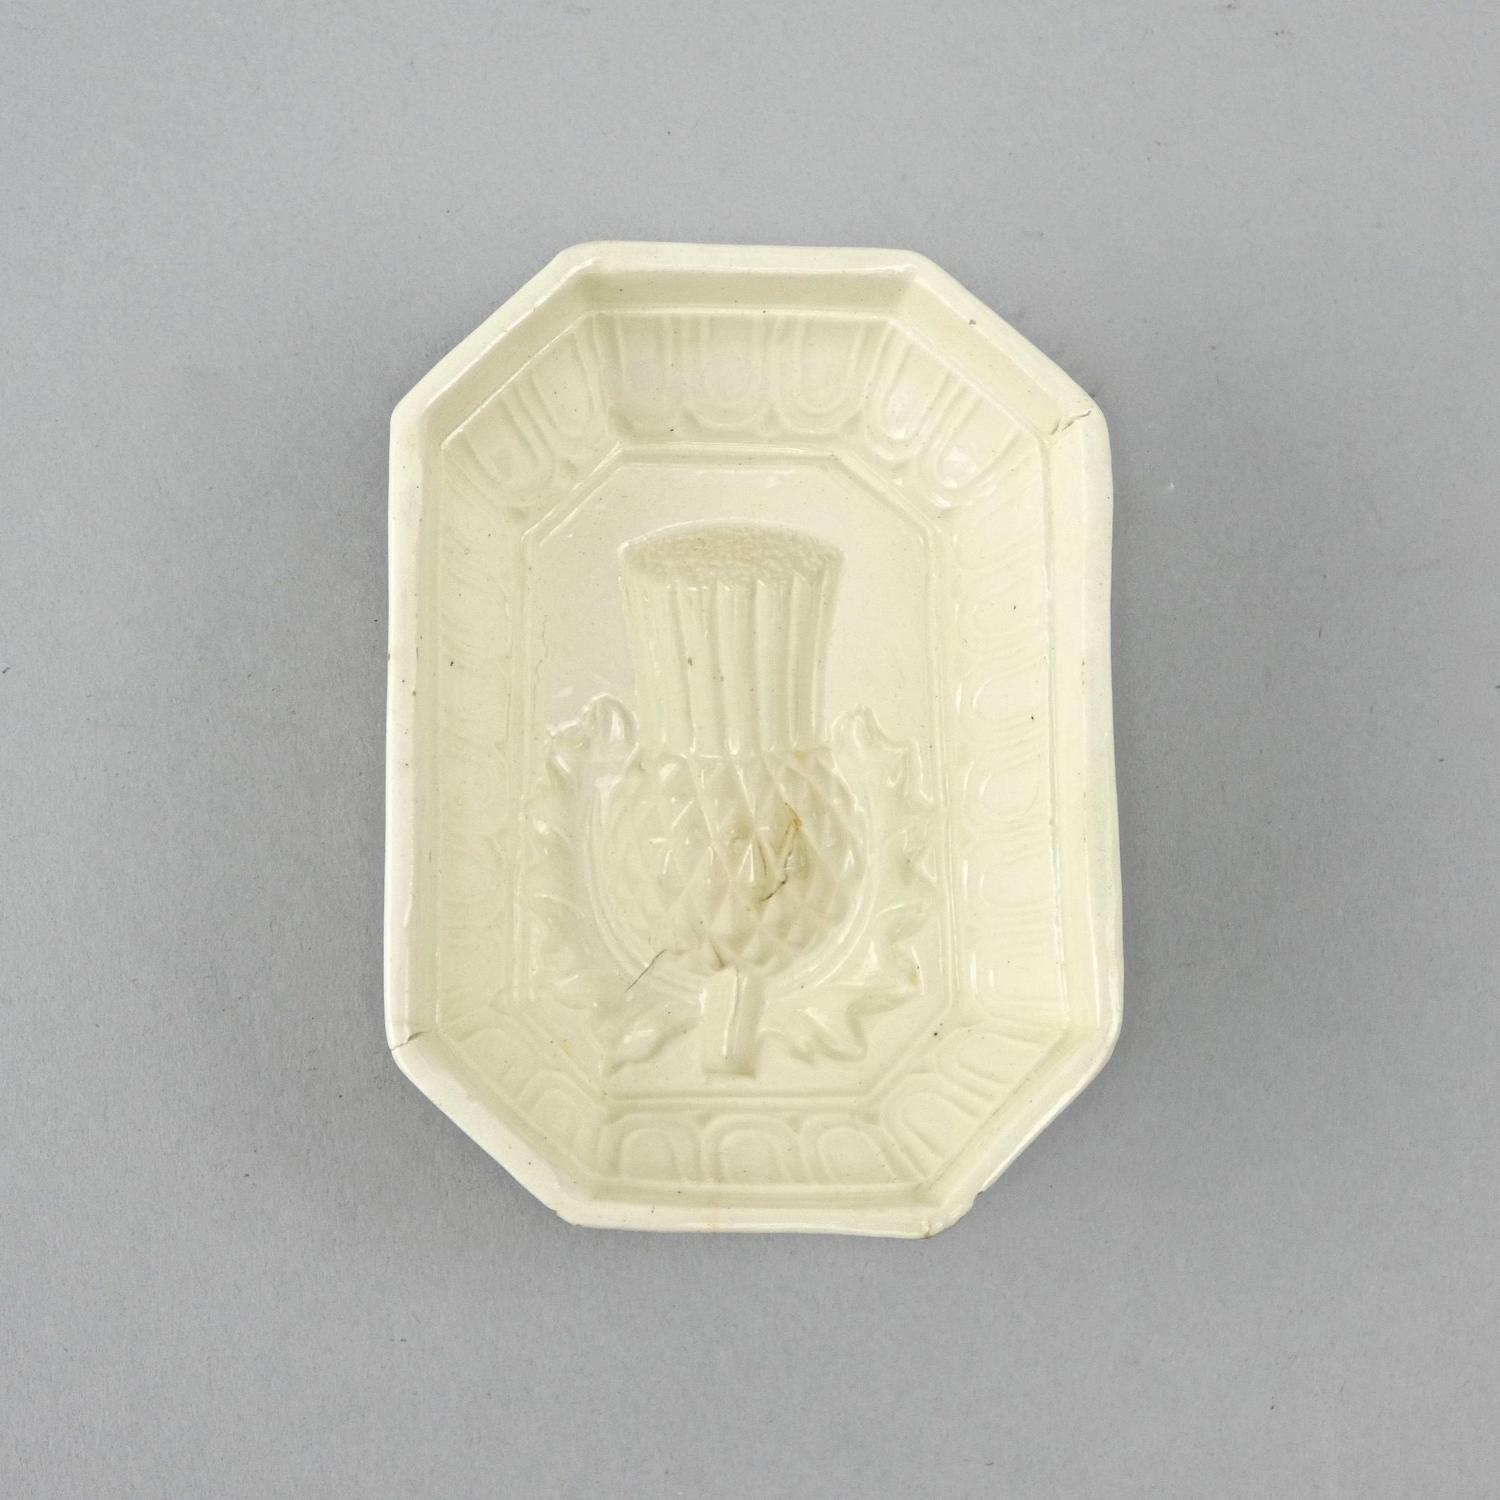 Miniature creamware thistle mould